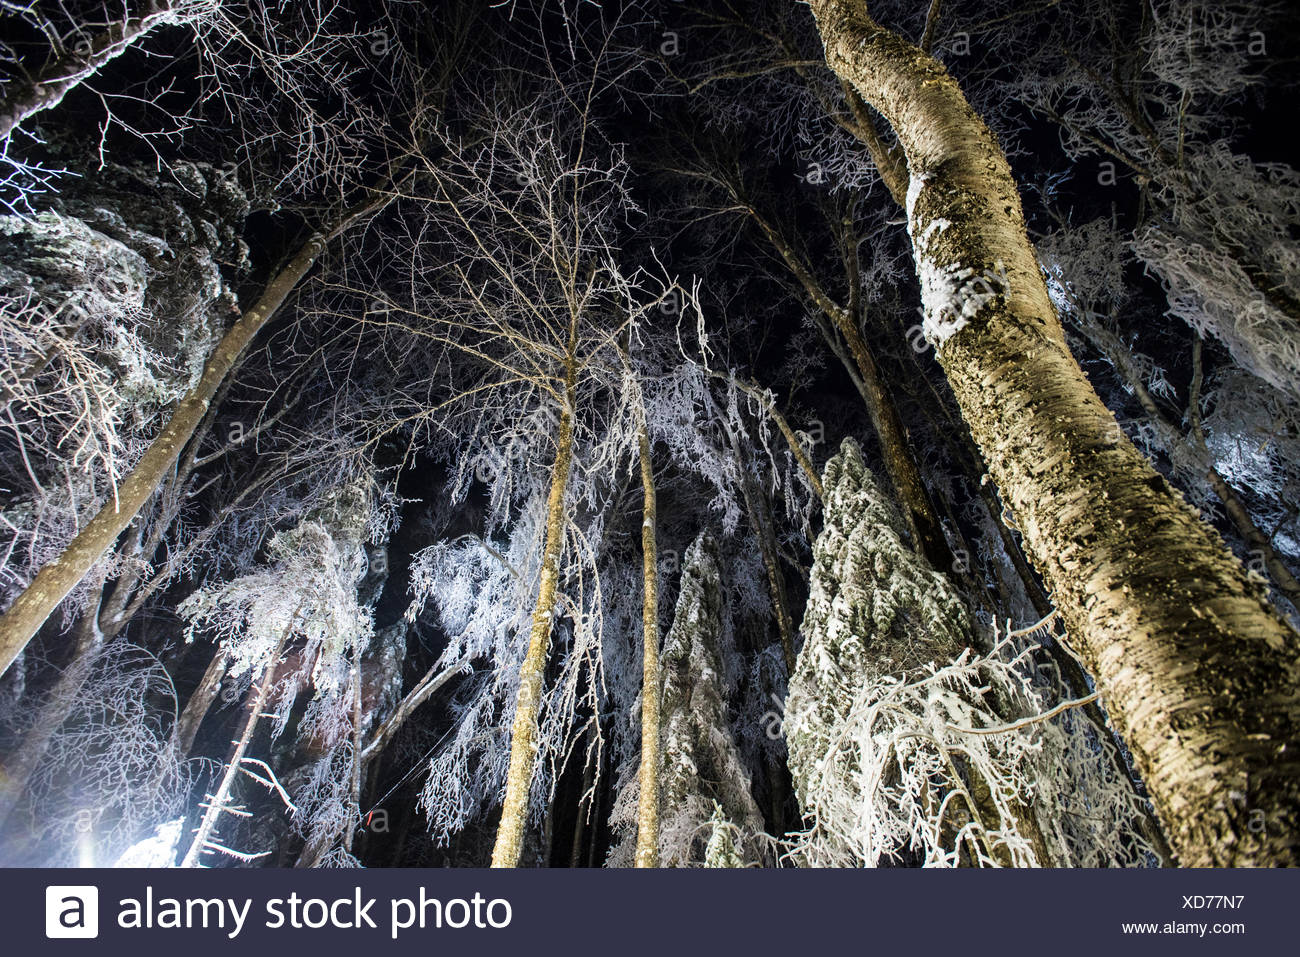 A team of researchers replicating an ice storm during winter in the